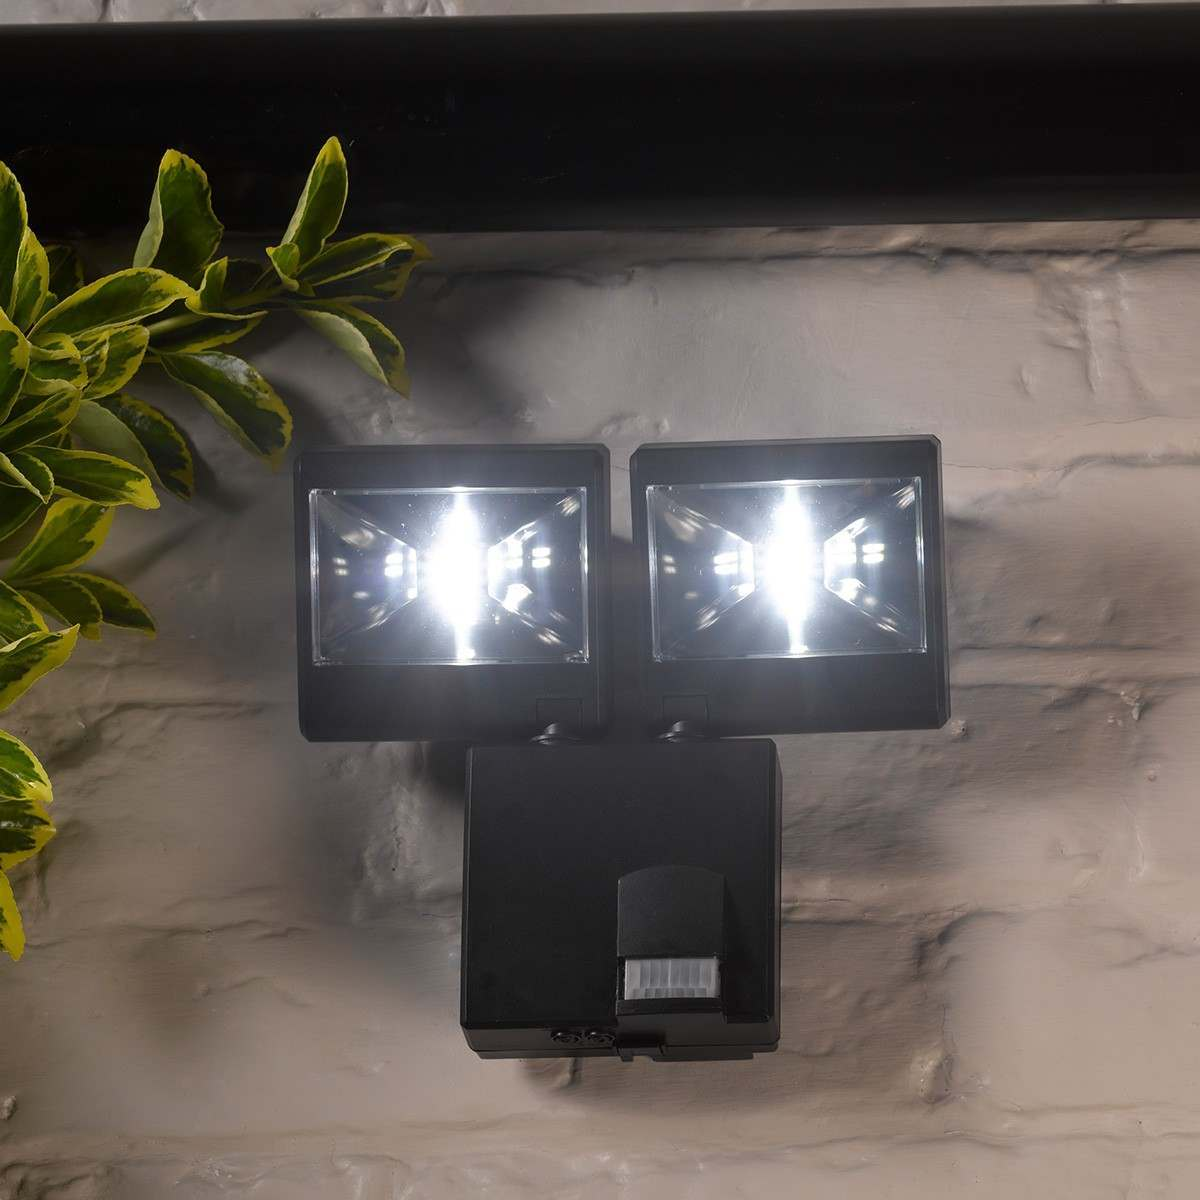 led outdoor battery operated security light with pir motion sensor. Black Bedroom Furniture Sets. Home Design Ideas